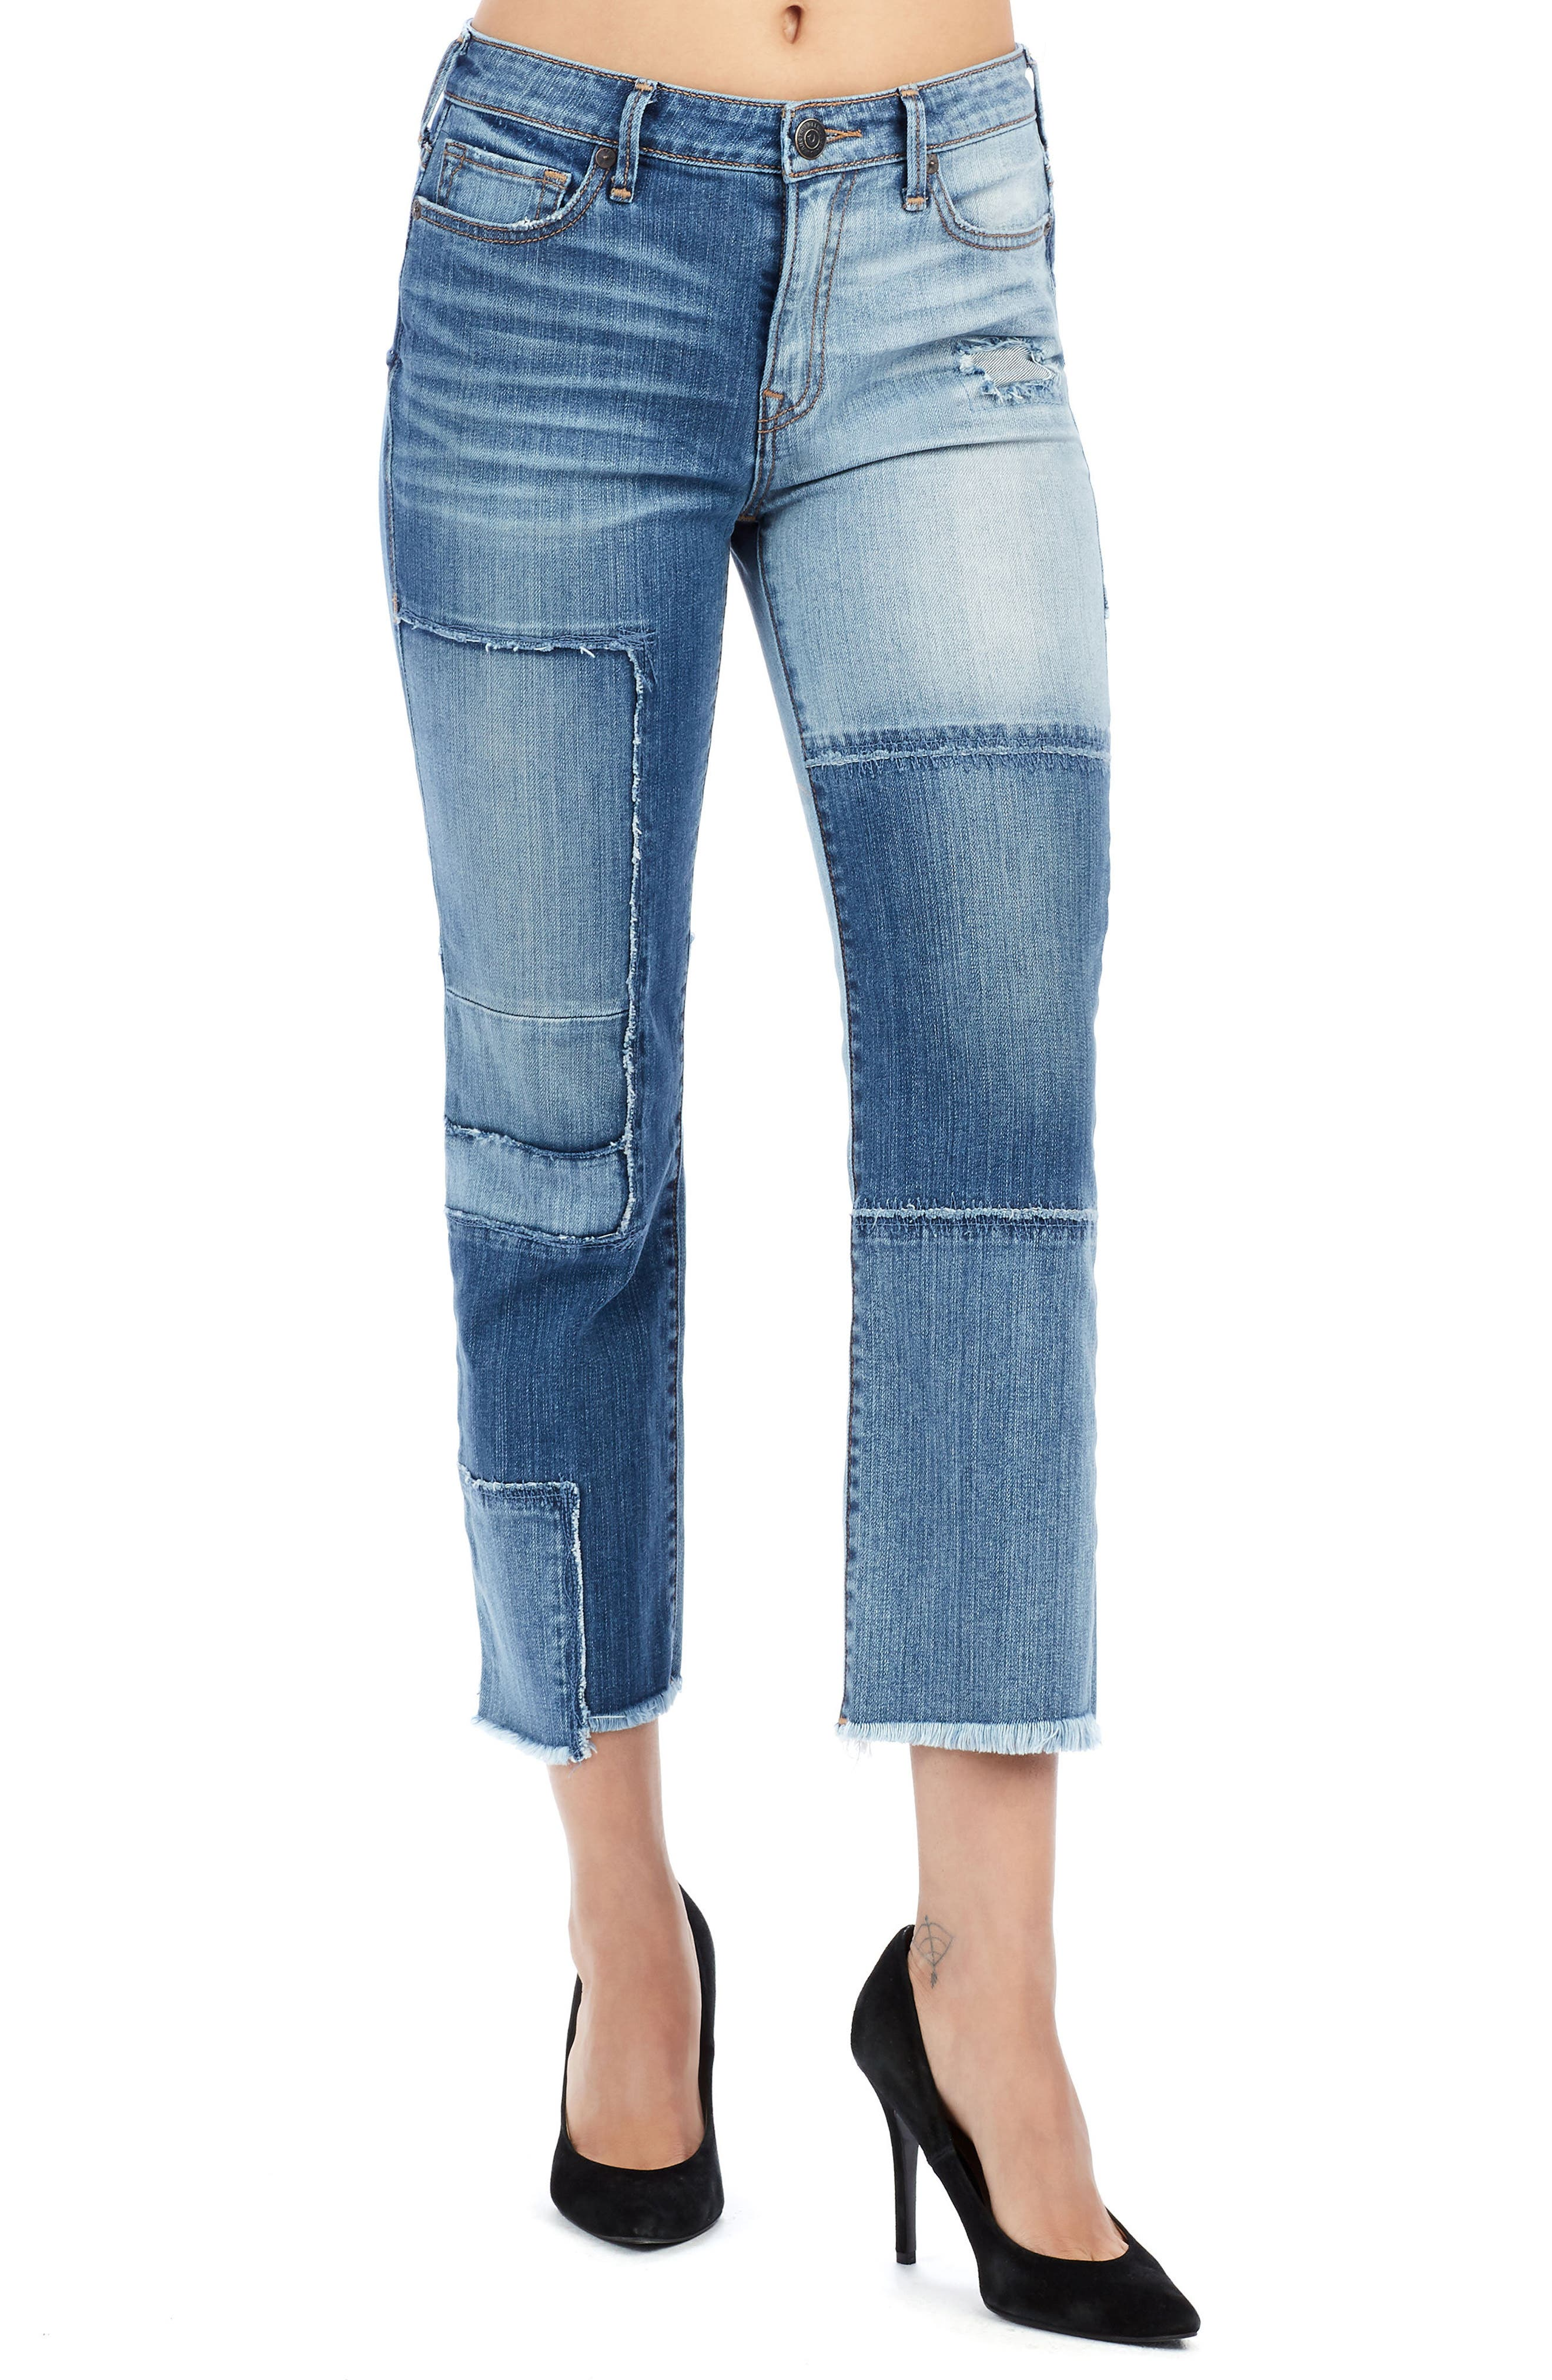 Main Image - True Religion Brand Jeans Stovepipe High Waist Crop Jeans (Mykonos)